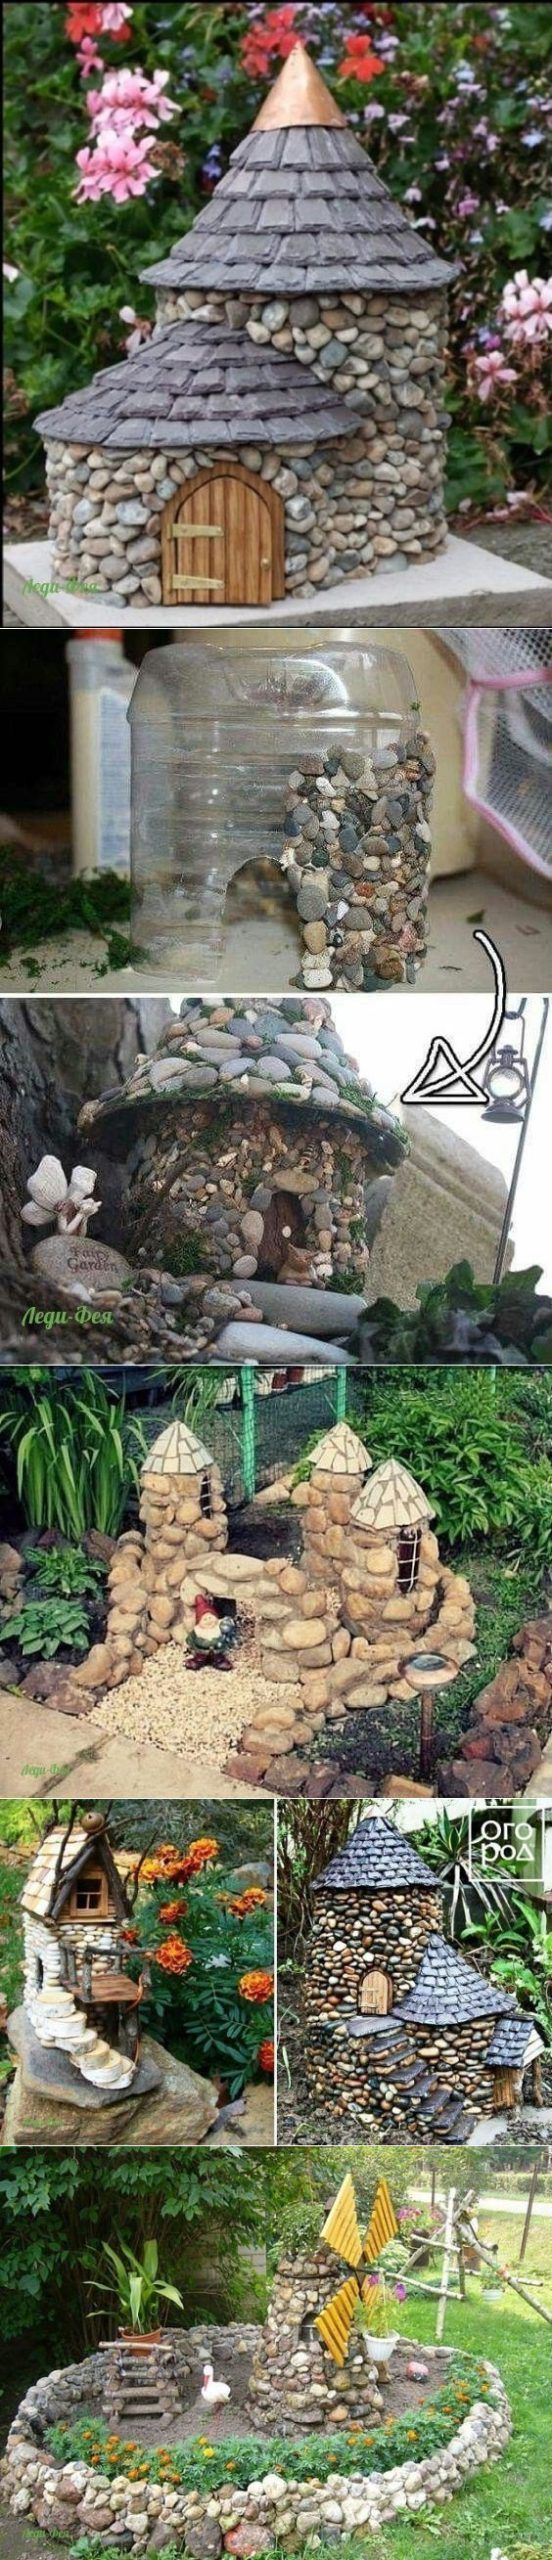 Photo of Ideas for chalets at home   Jardin Miniature Idee #chalets #ideas #jardin #minia…